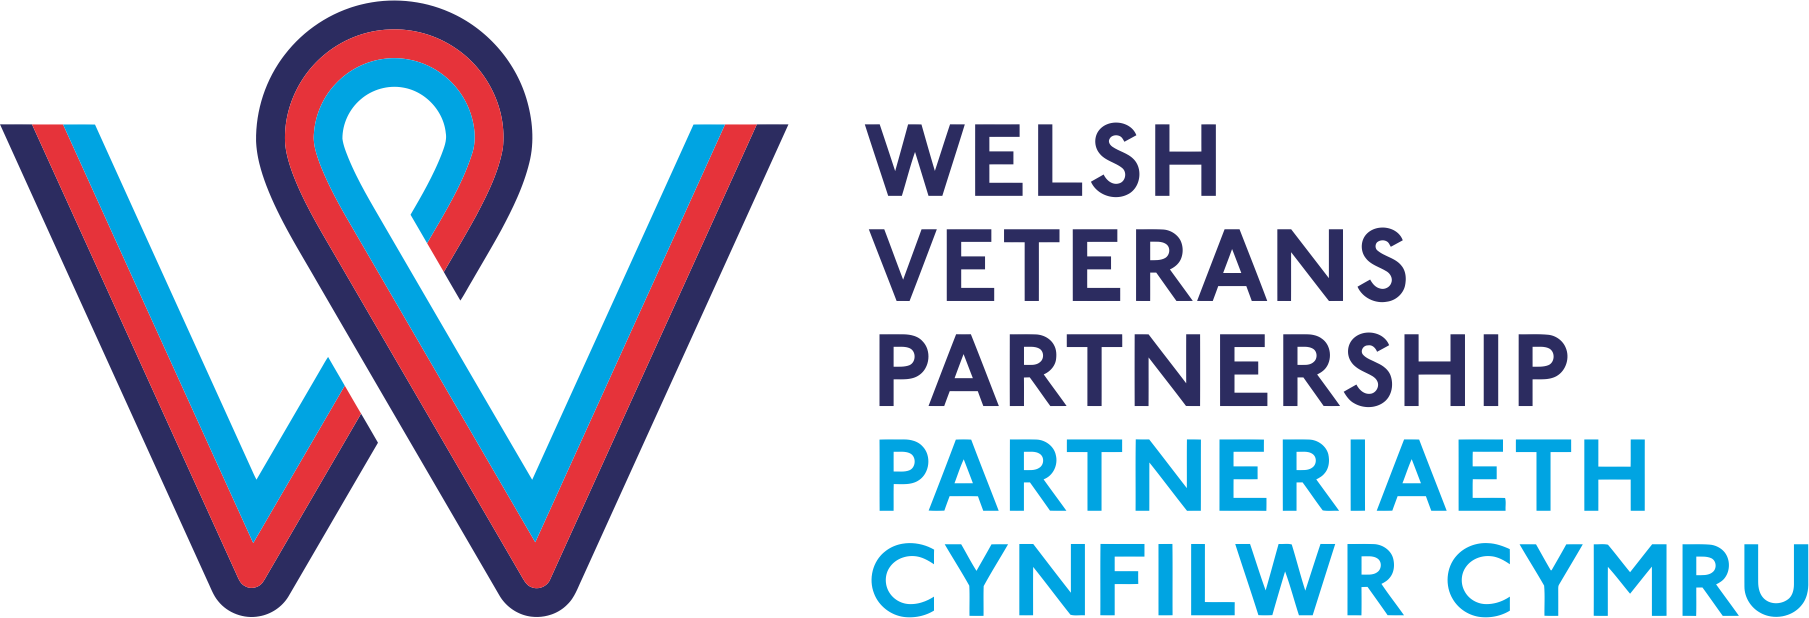 Welsh Veterans Partnership Blog